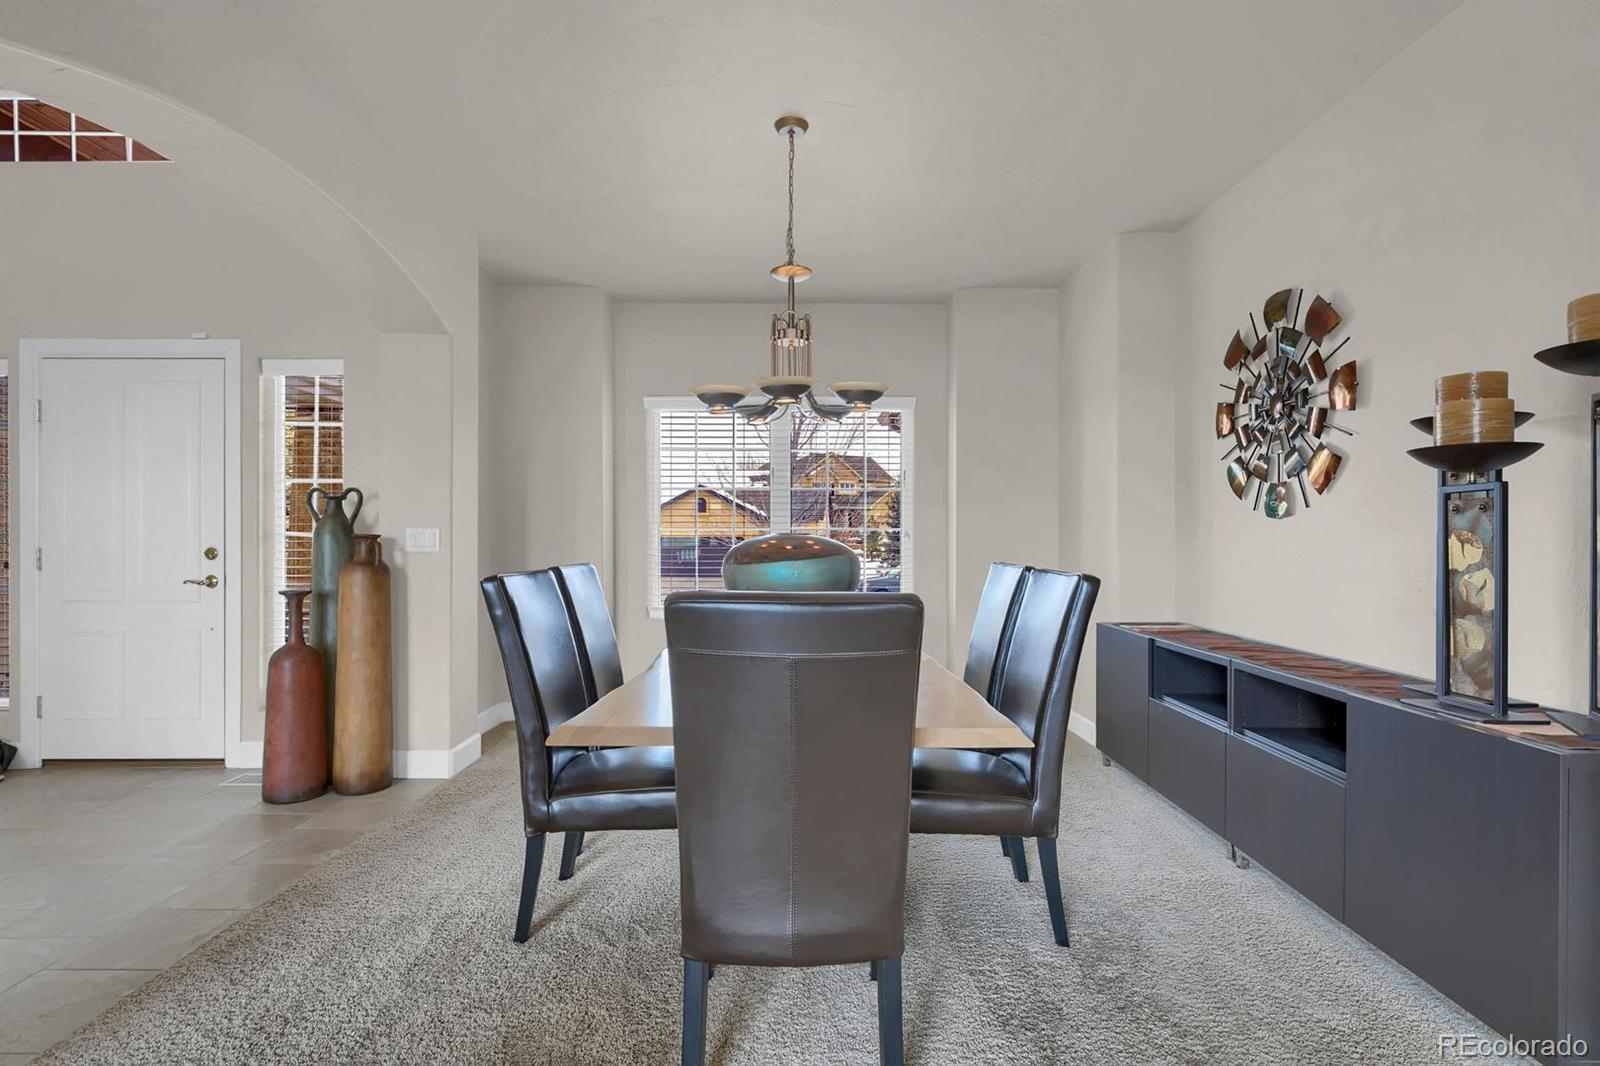 MLS# 5159811 - 6 - 207 Green Rock Place, Monument, CO 80132